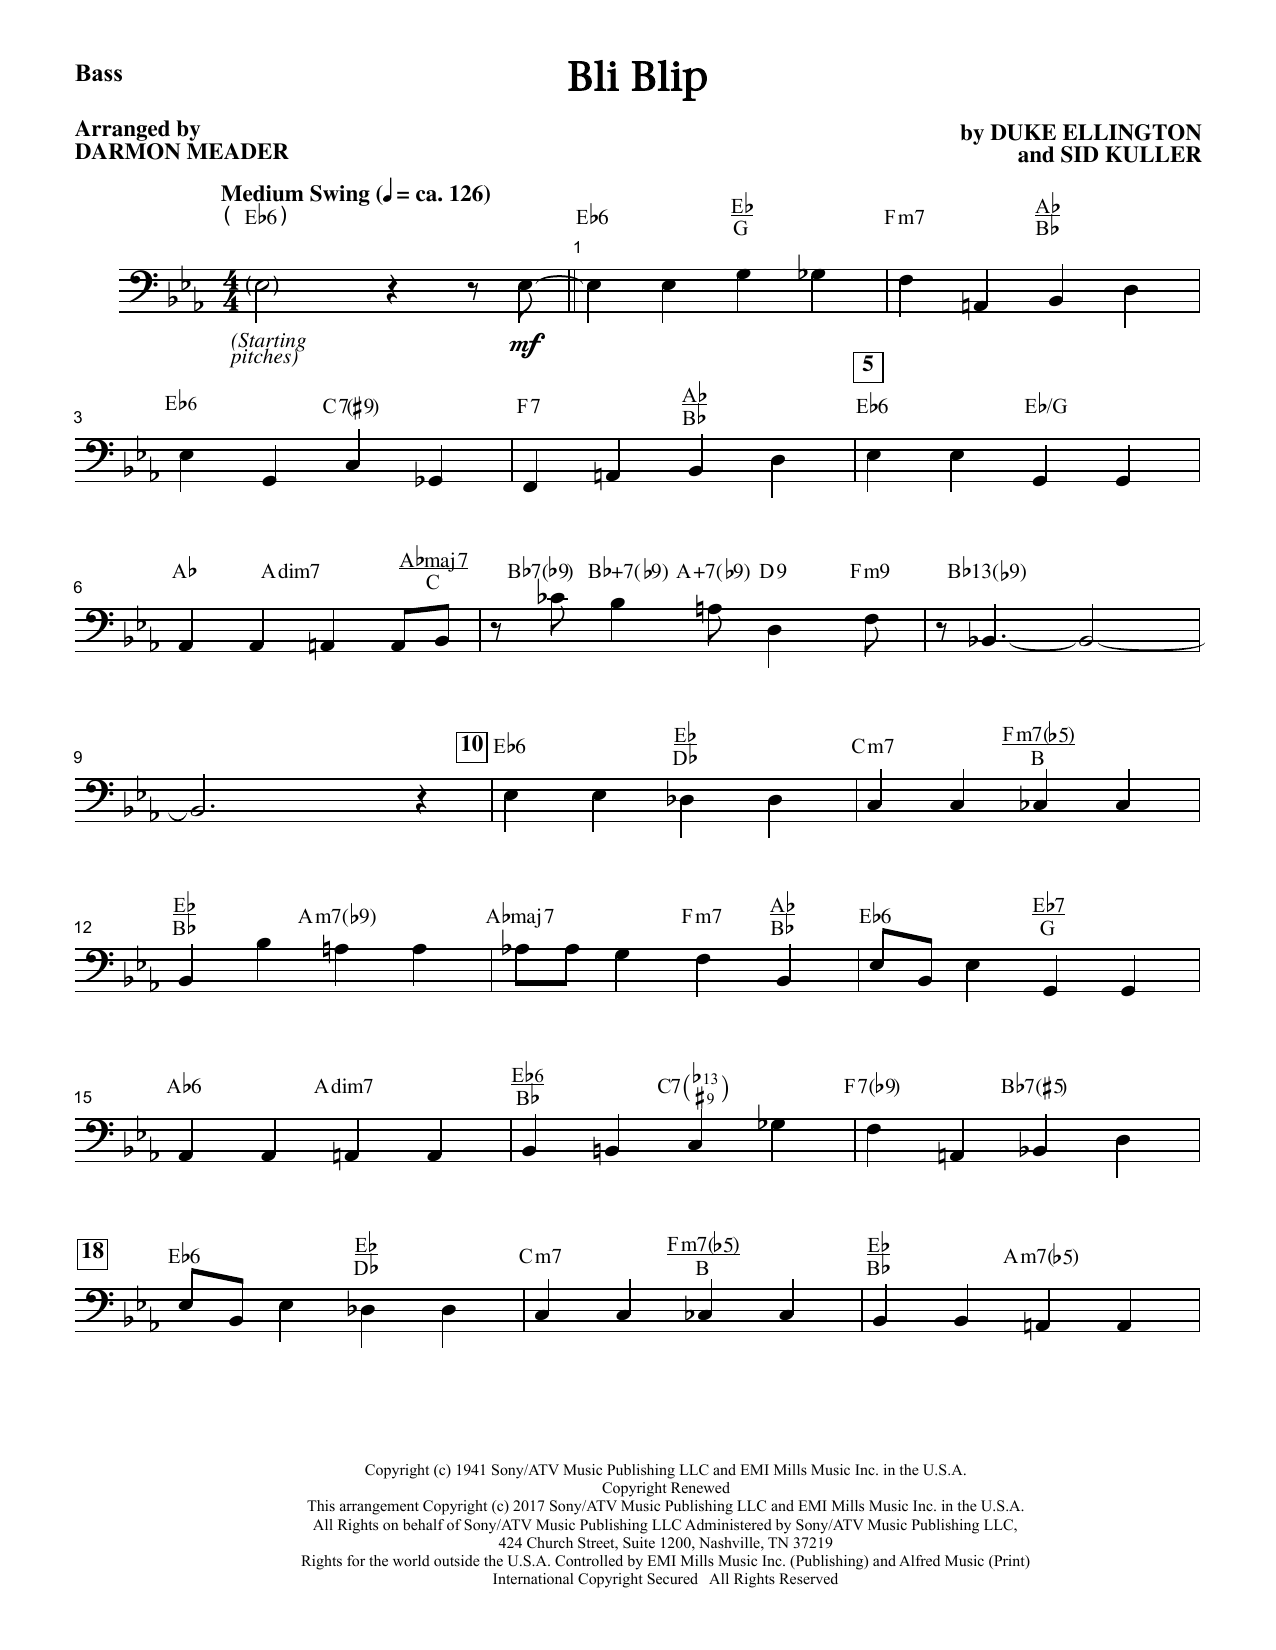 Bli-blip - Bass Sheet Music